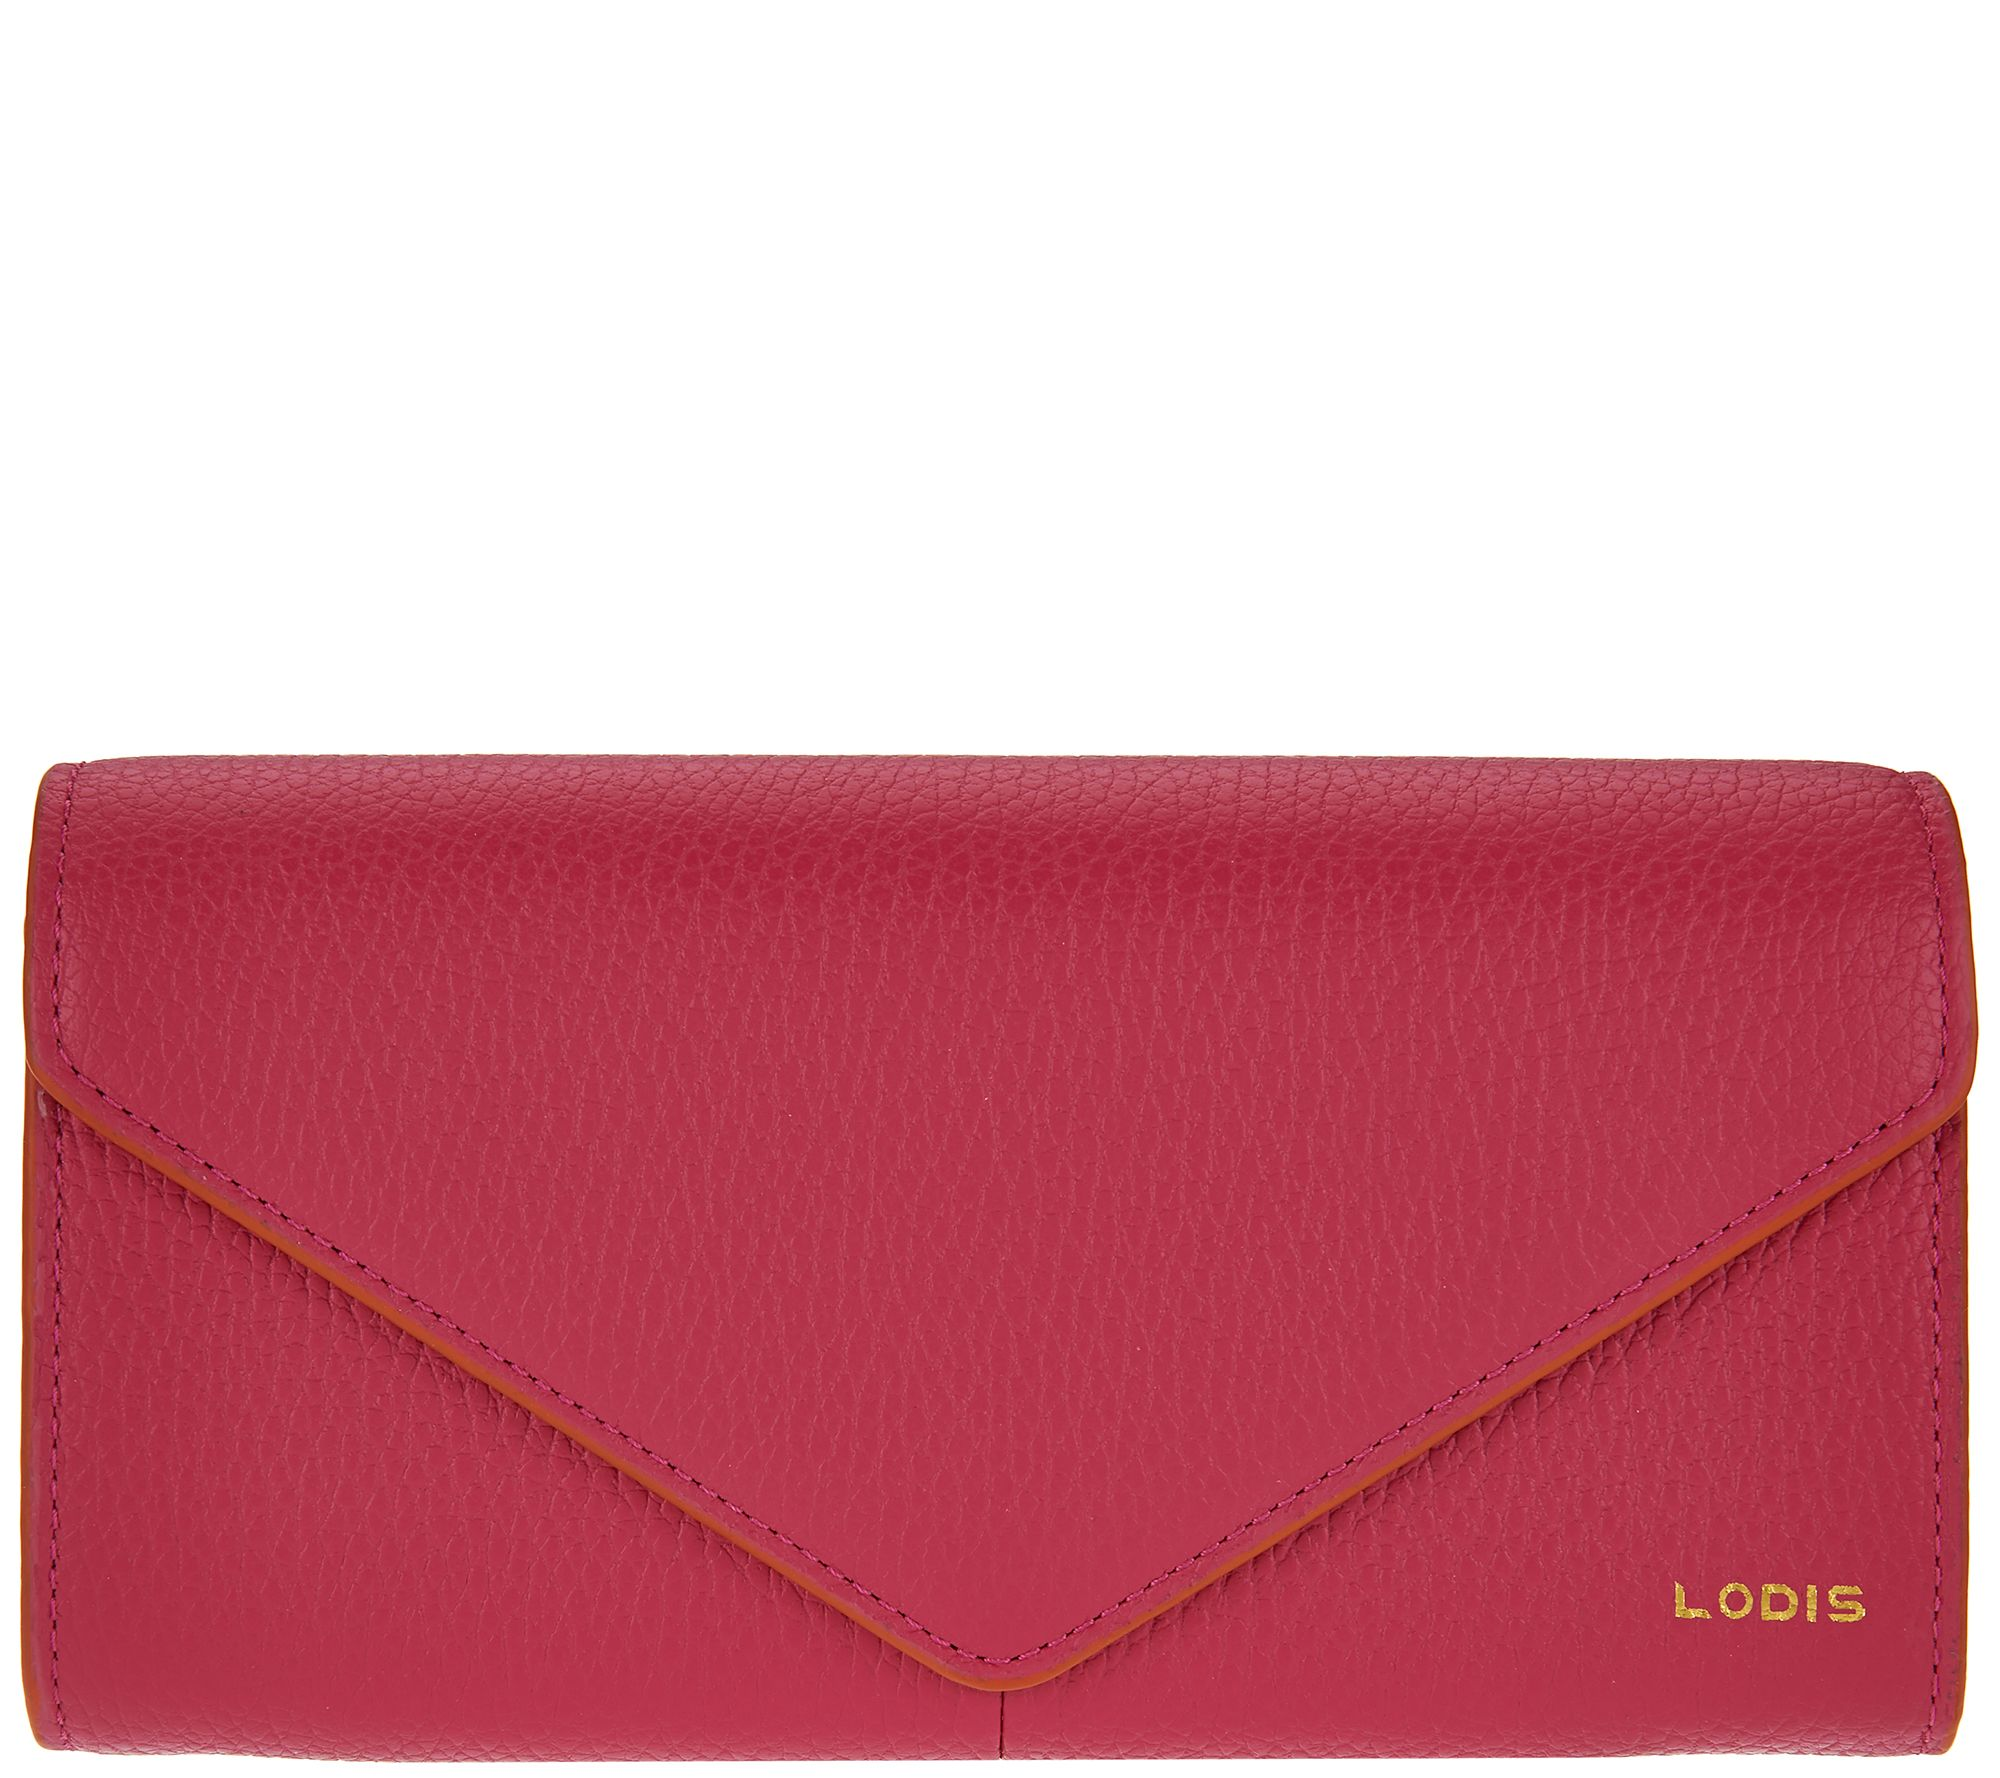 LODIS Italian Leather Organizer Wallet with RFID Protection - A277888 — QVC.com